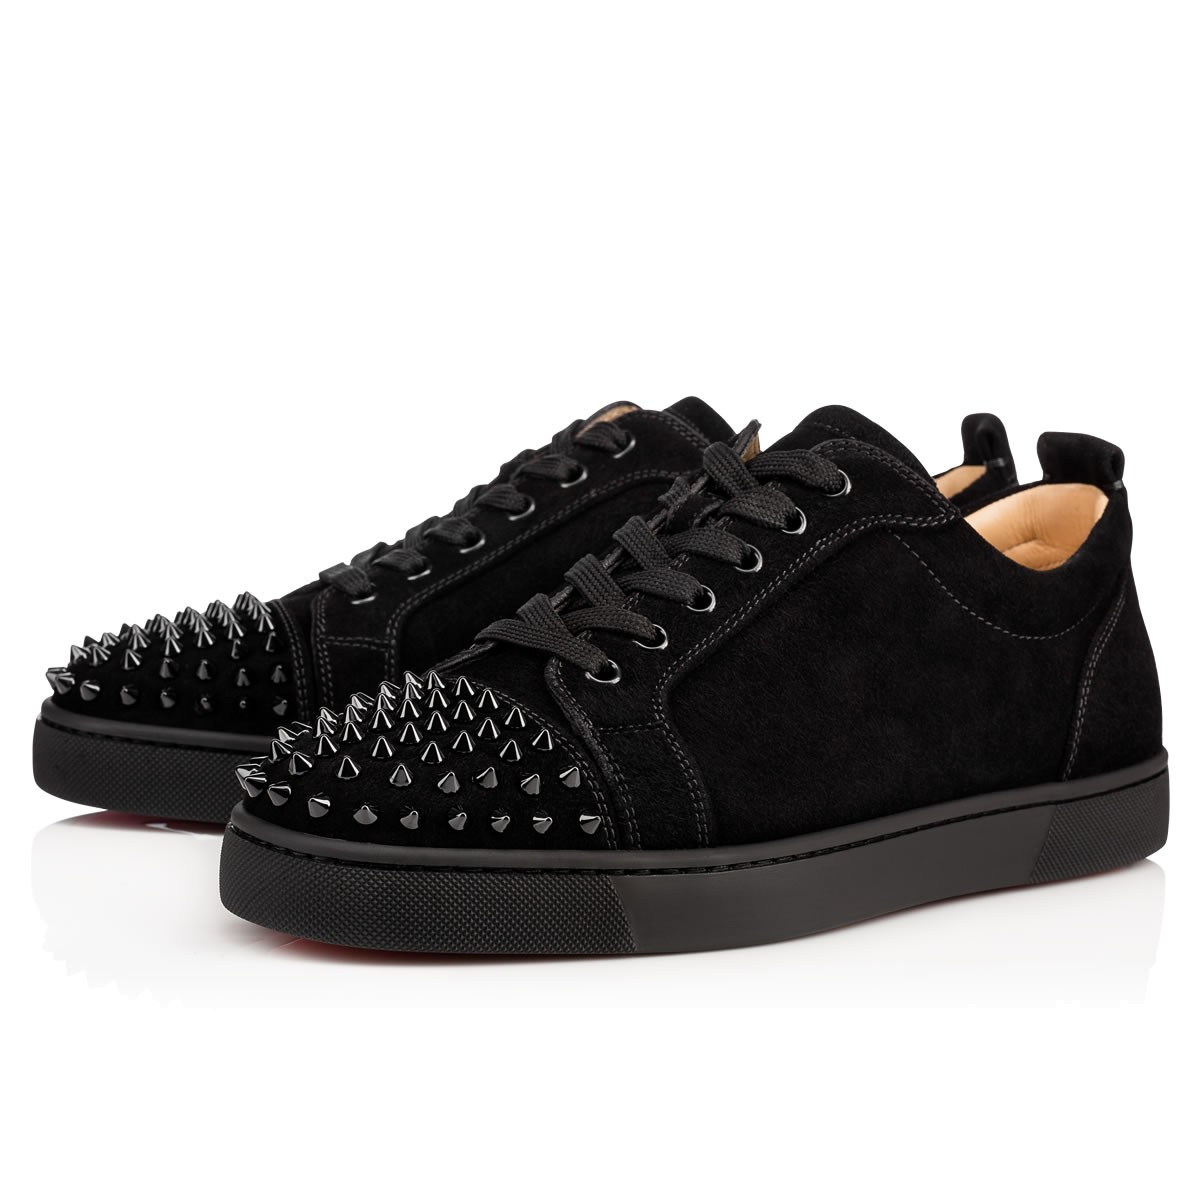 67ffe6eac96 Christian Louboutin Louis Junior Spikes Veau Velours Gros Grain In ...